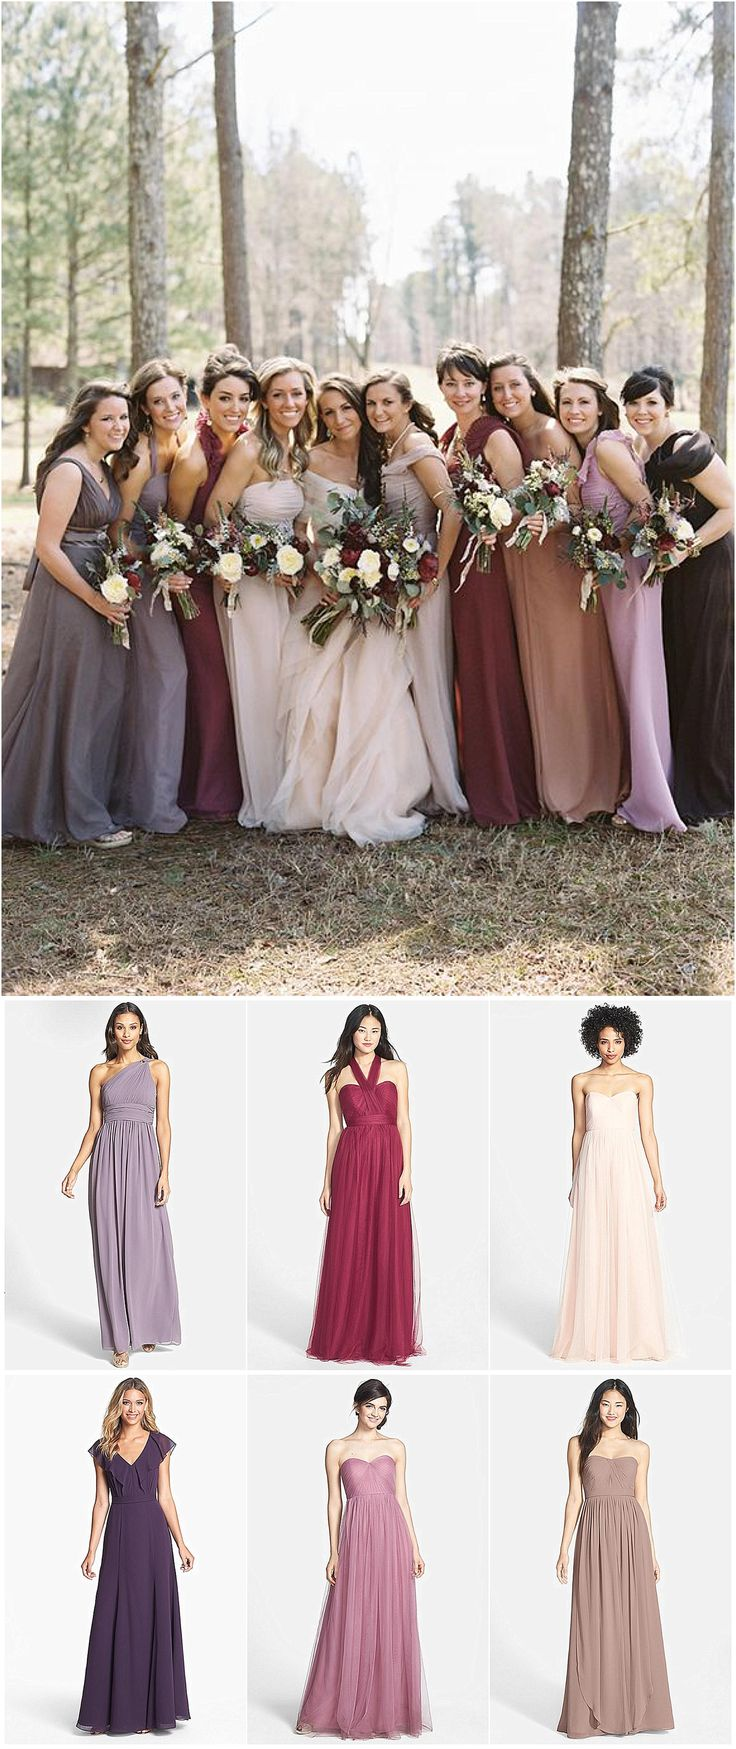 Mismatched Bridesmaid dresses ideas. This is a great idea for fall weddings!   https://www.thebridelink.com/blog/2014/08/15/mismatched-bridesmaid-dress-ideas-for-fall-weddings/